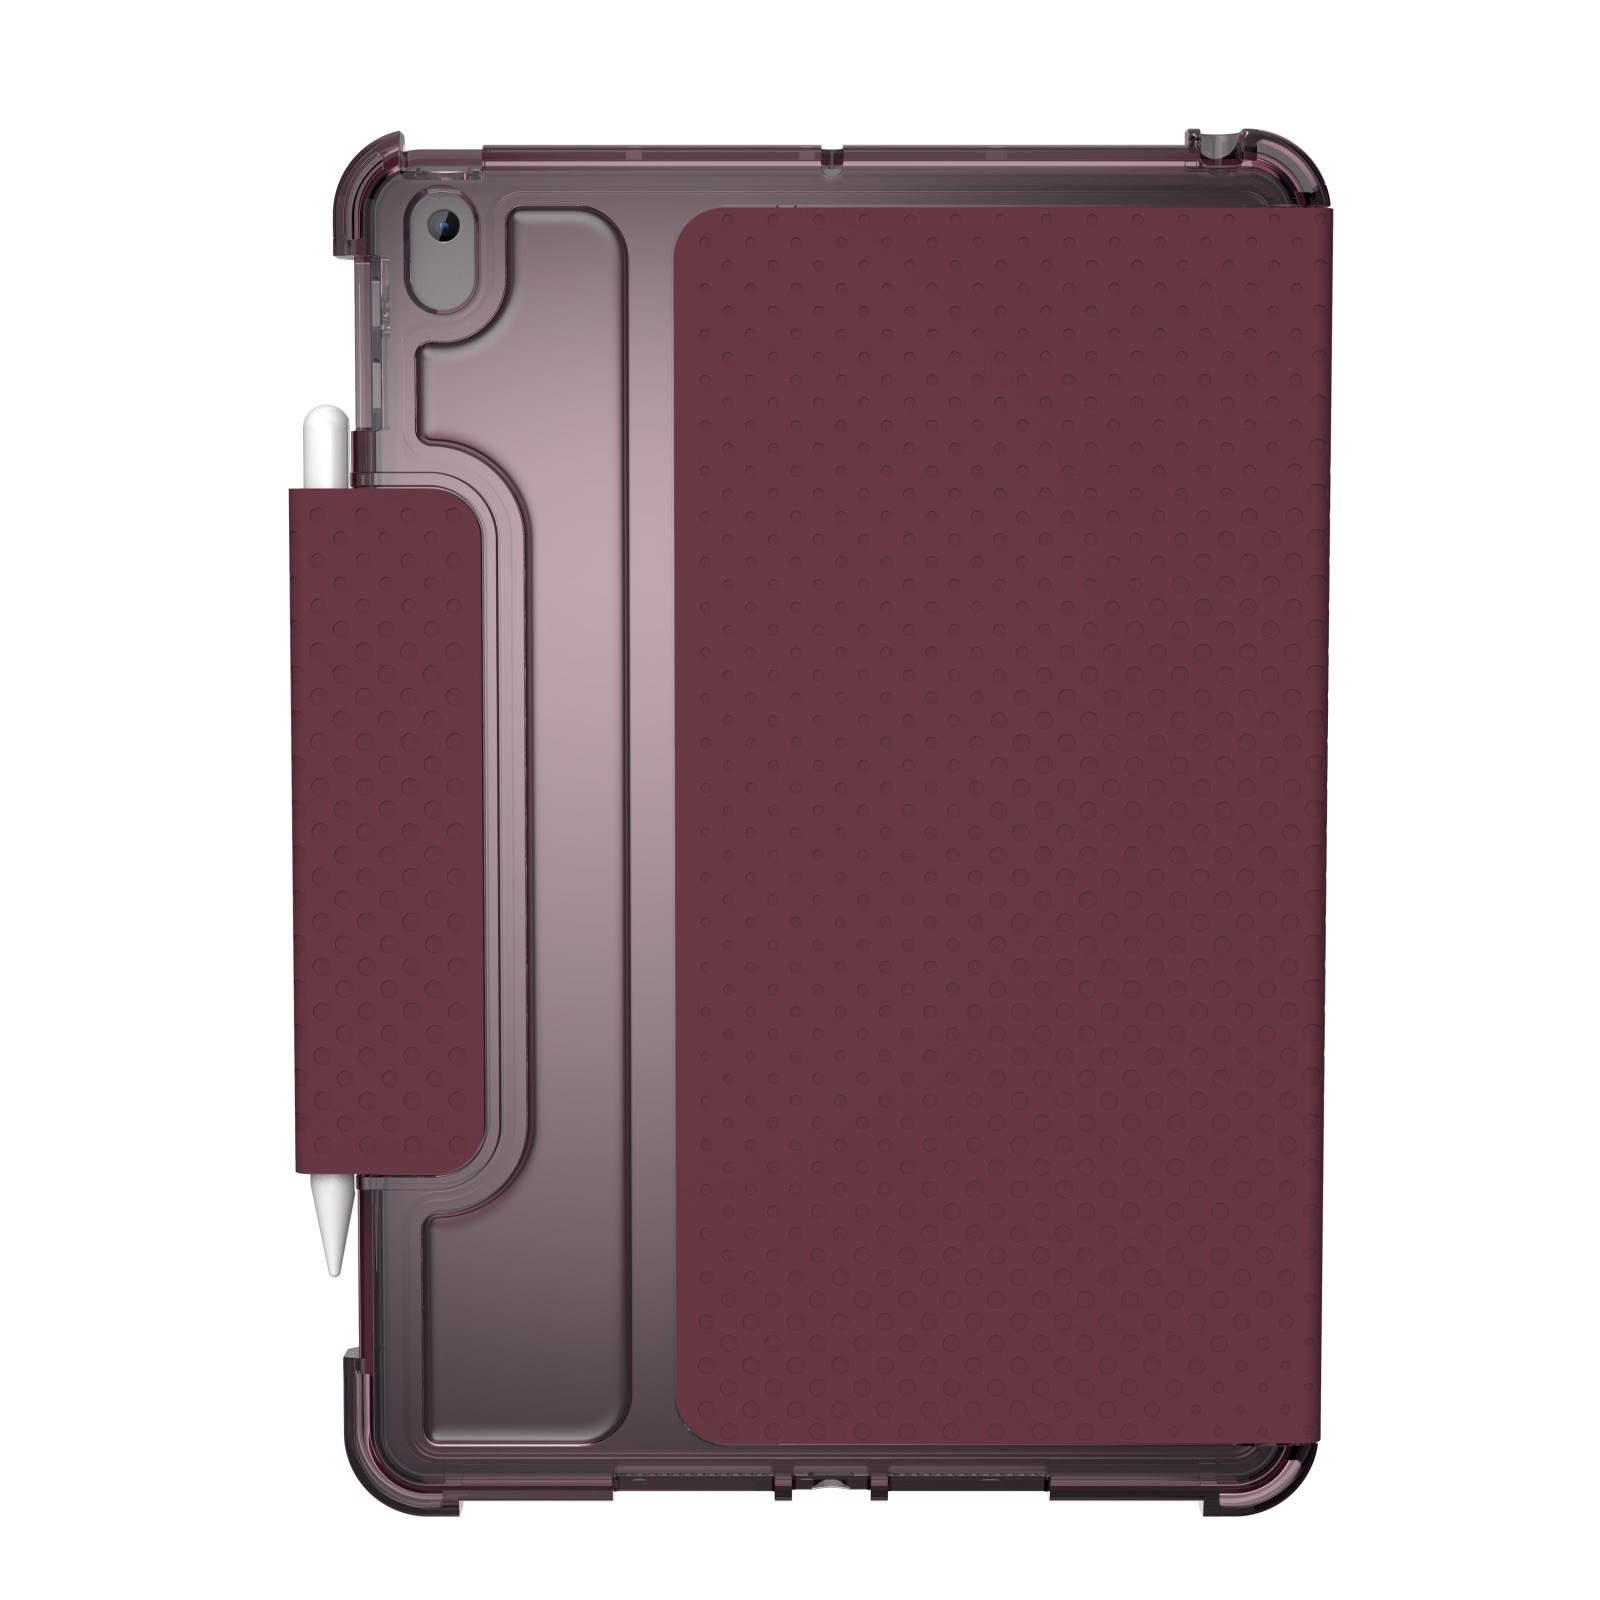 ỐP LƯNG UAG LUCENT SERIES CHO IPAD GEN 8 2020 ( 10.2inch )